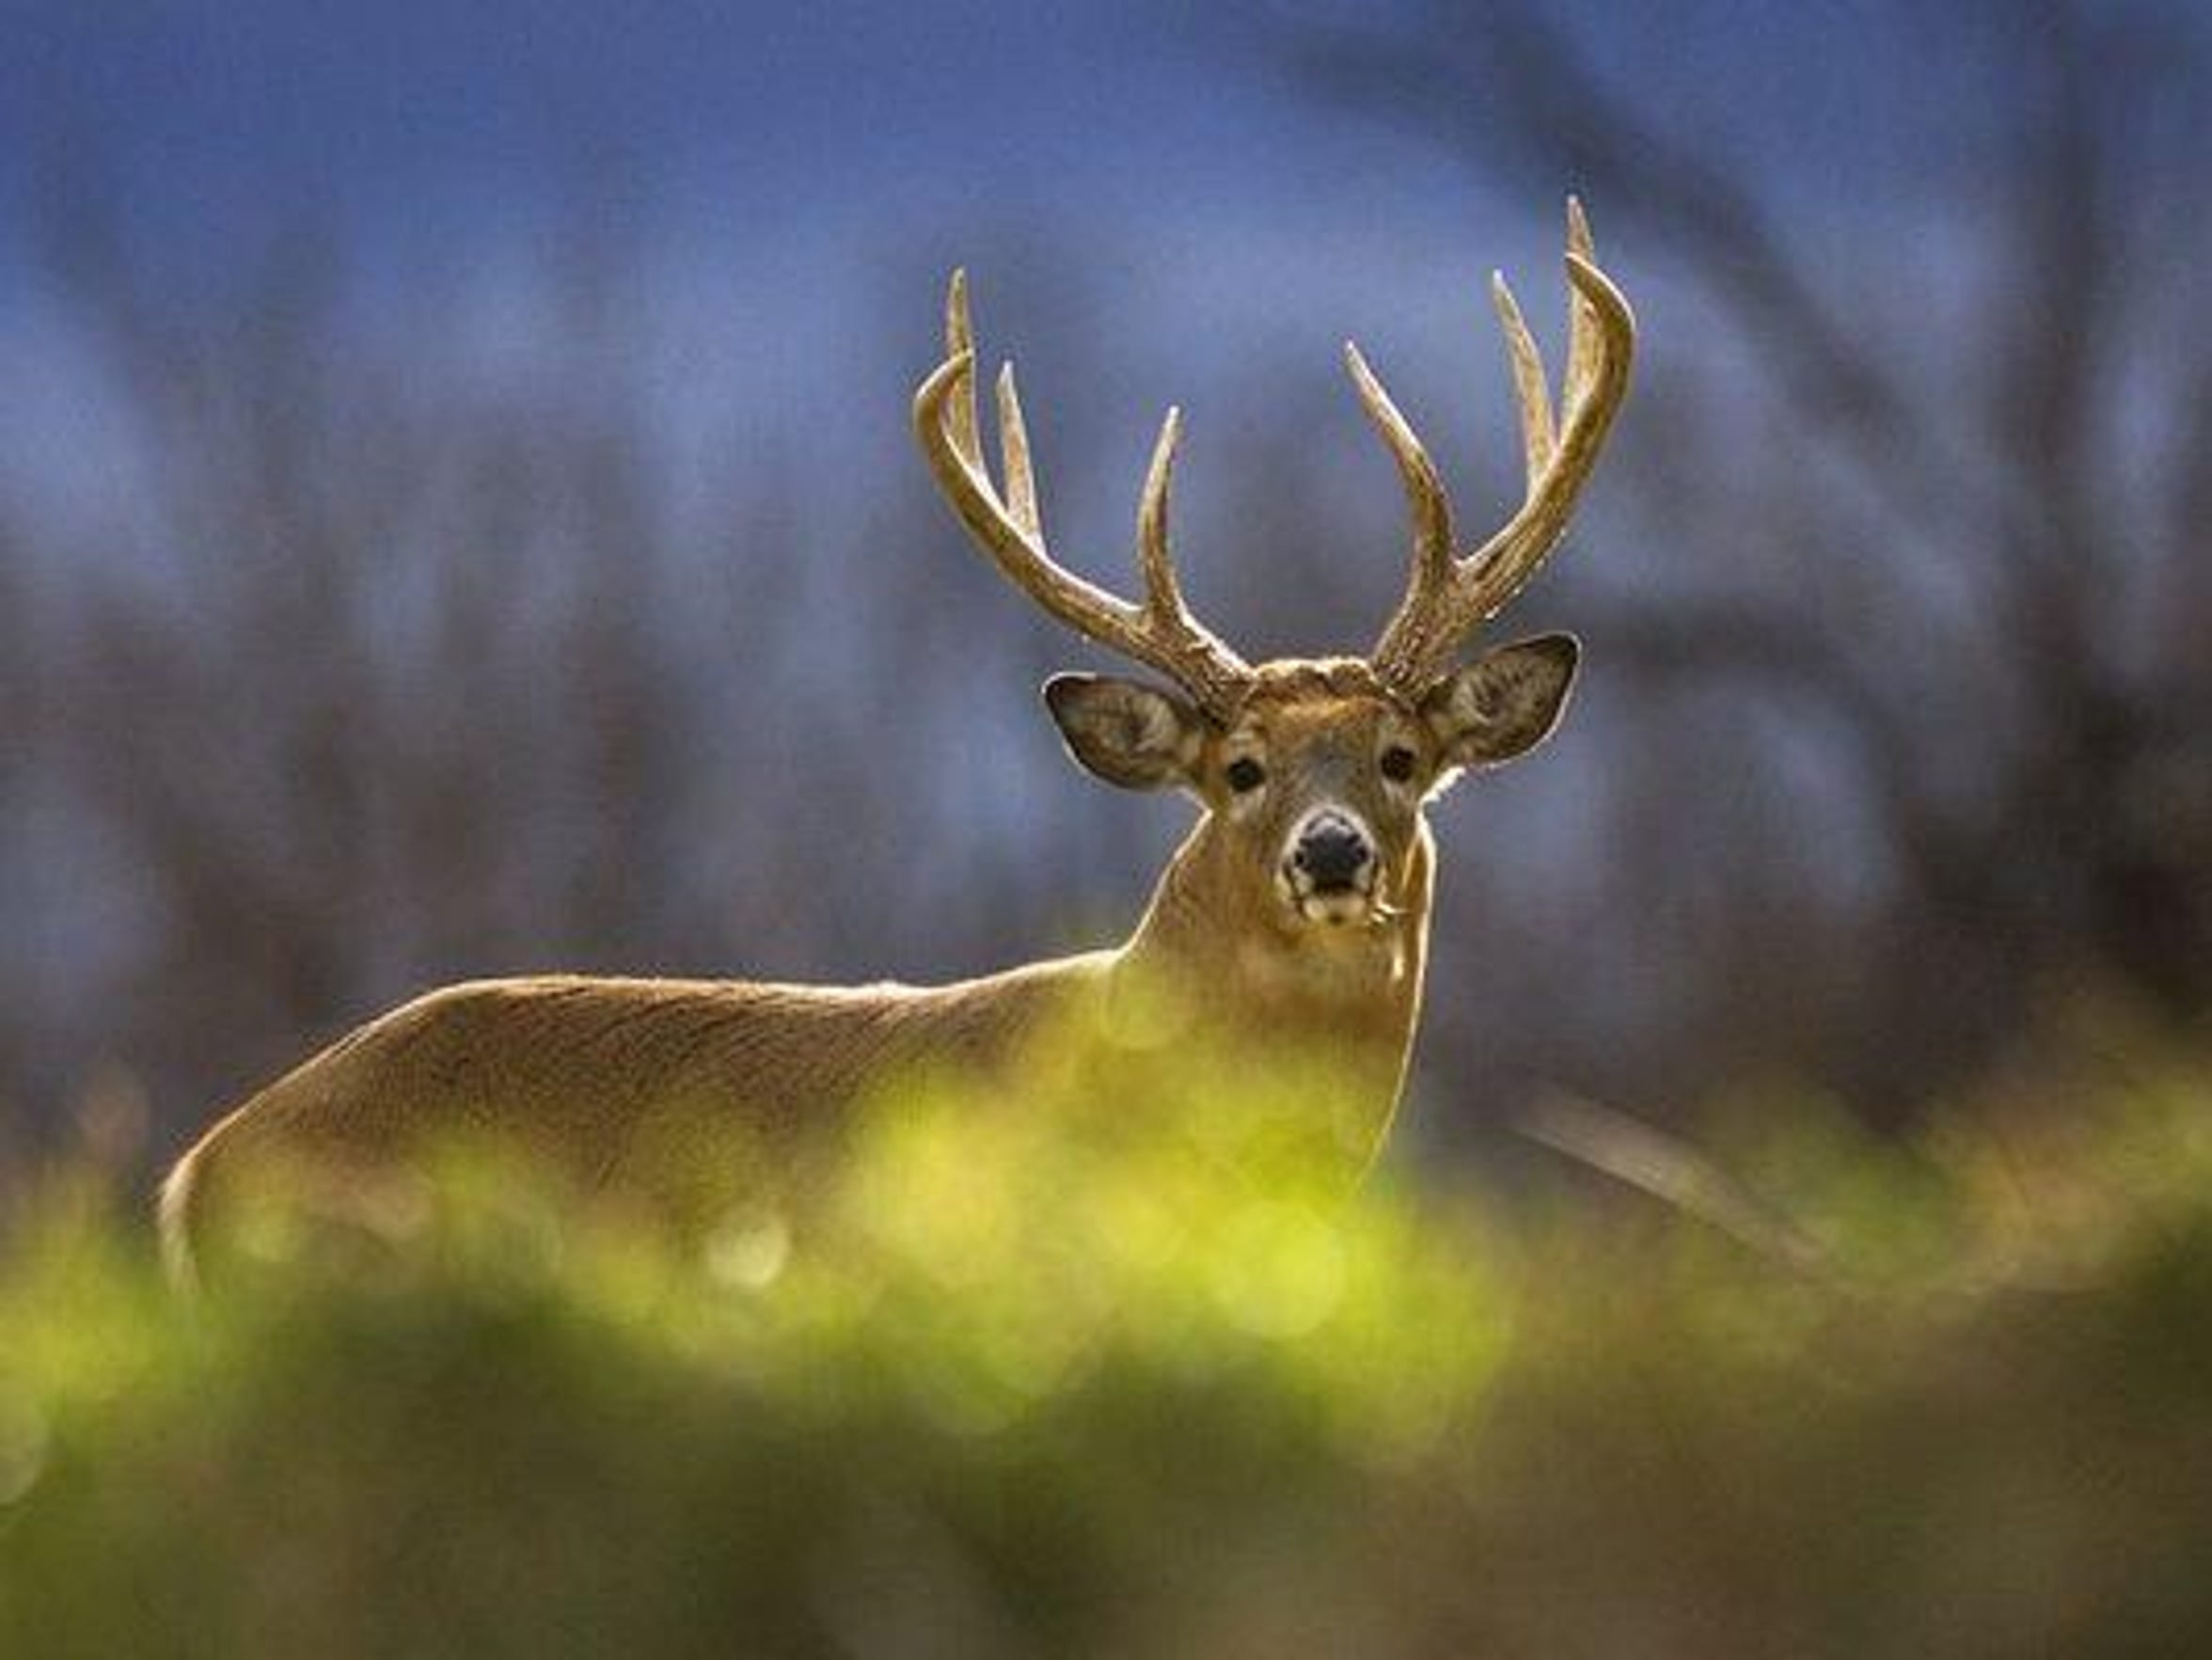 Bow hunters will be looking for big bucks with the